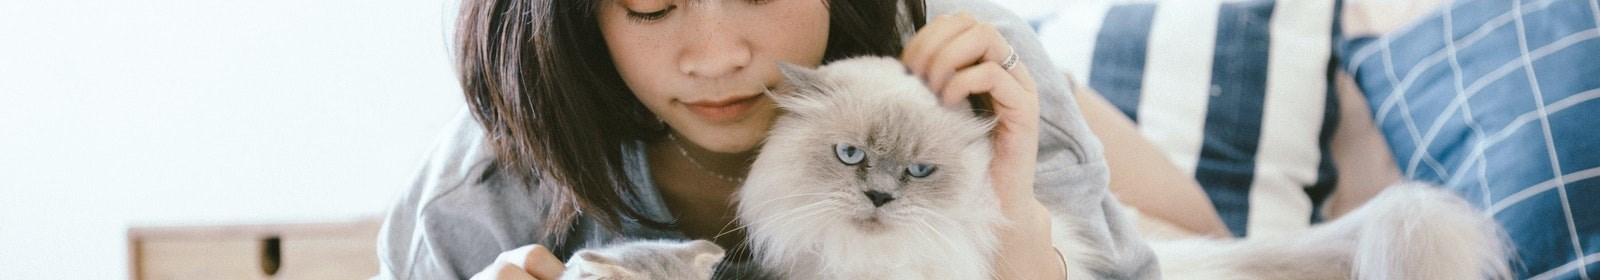 What to do when a tenant asks for pets